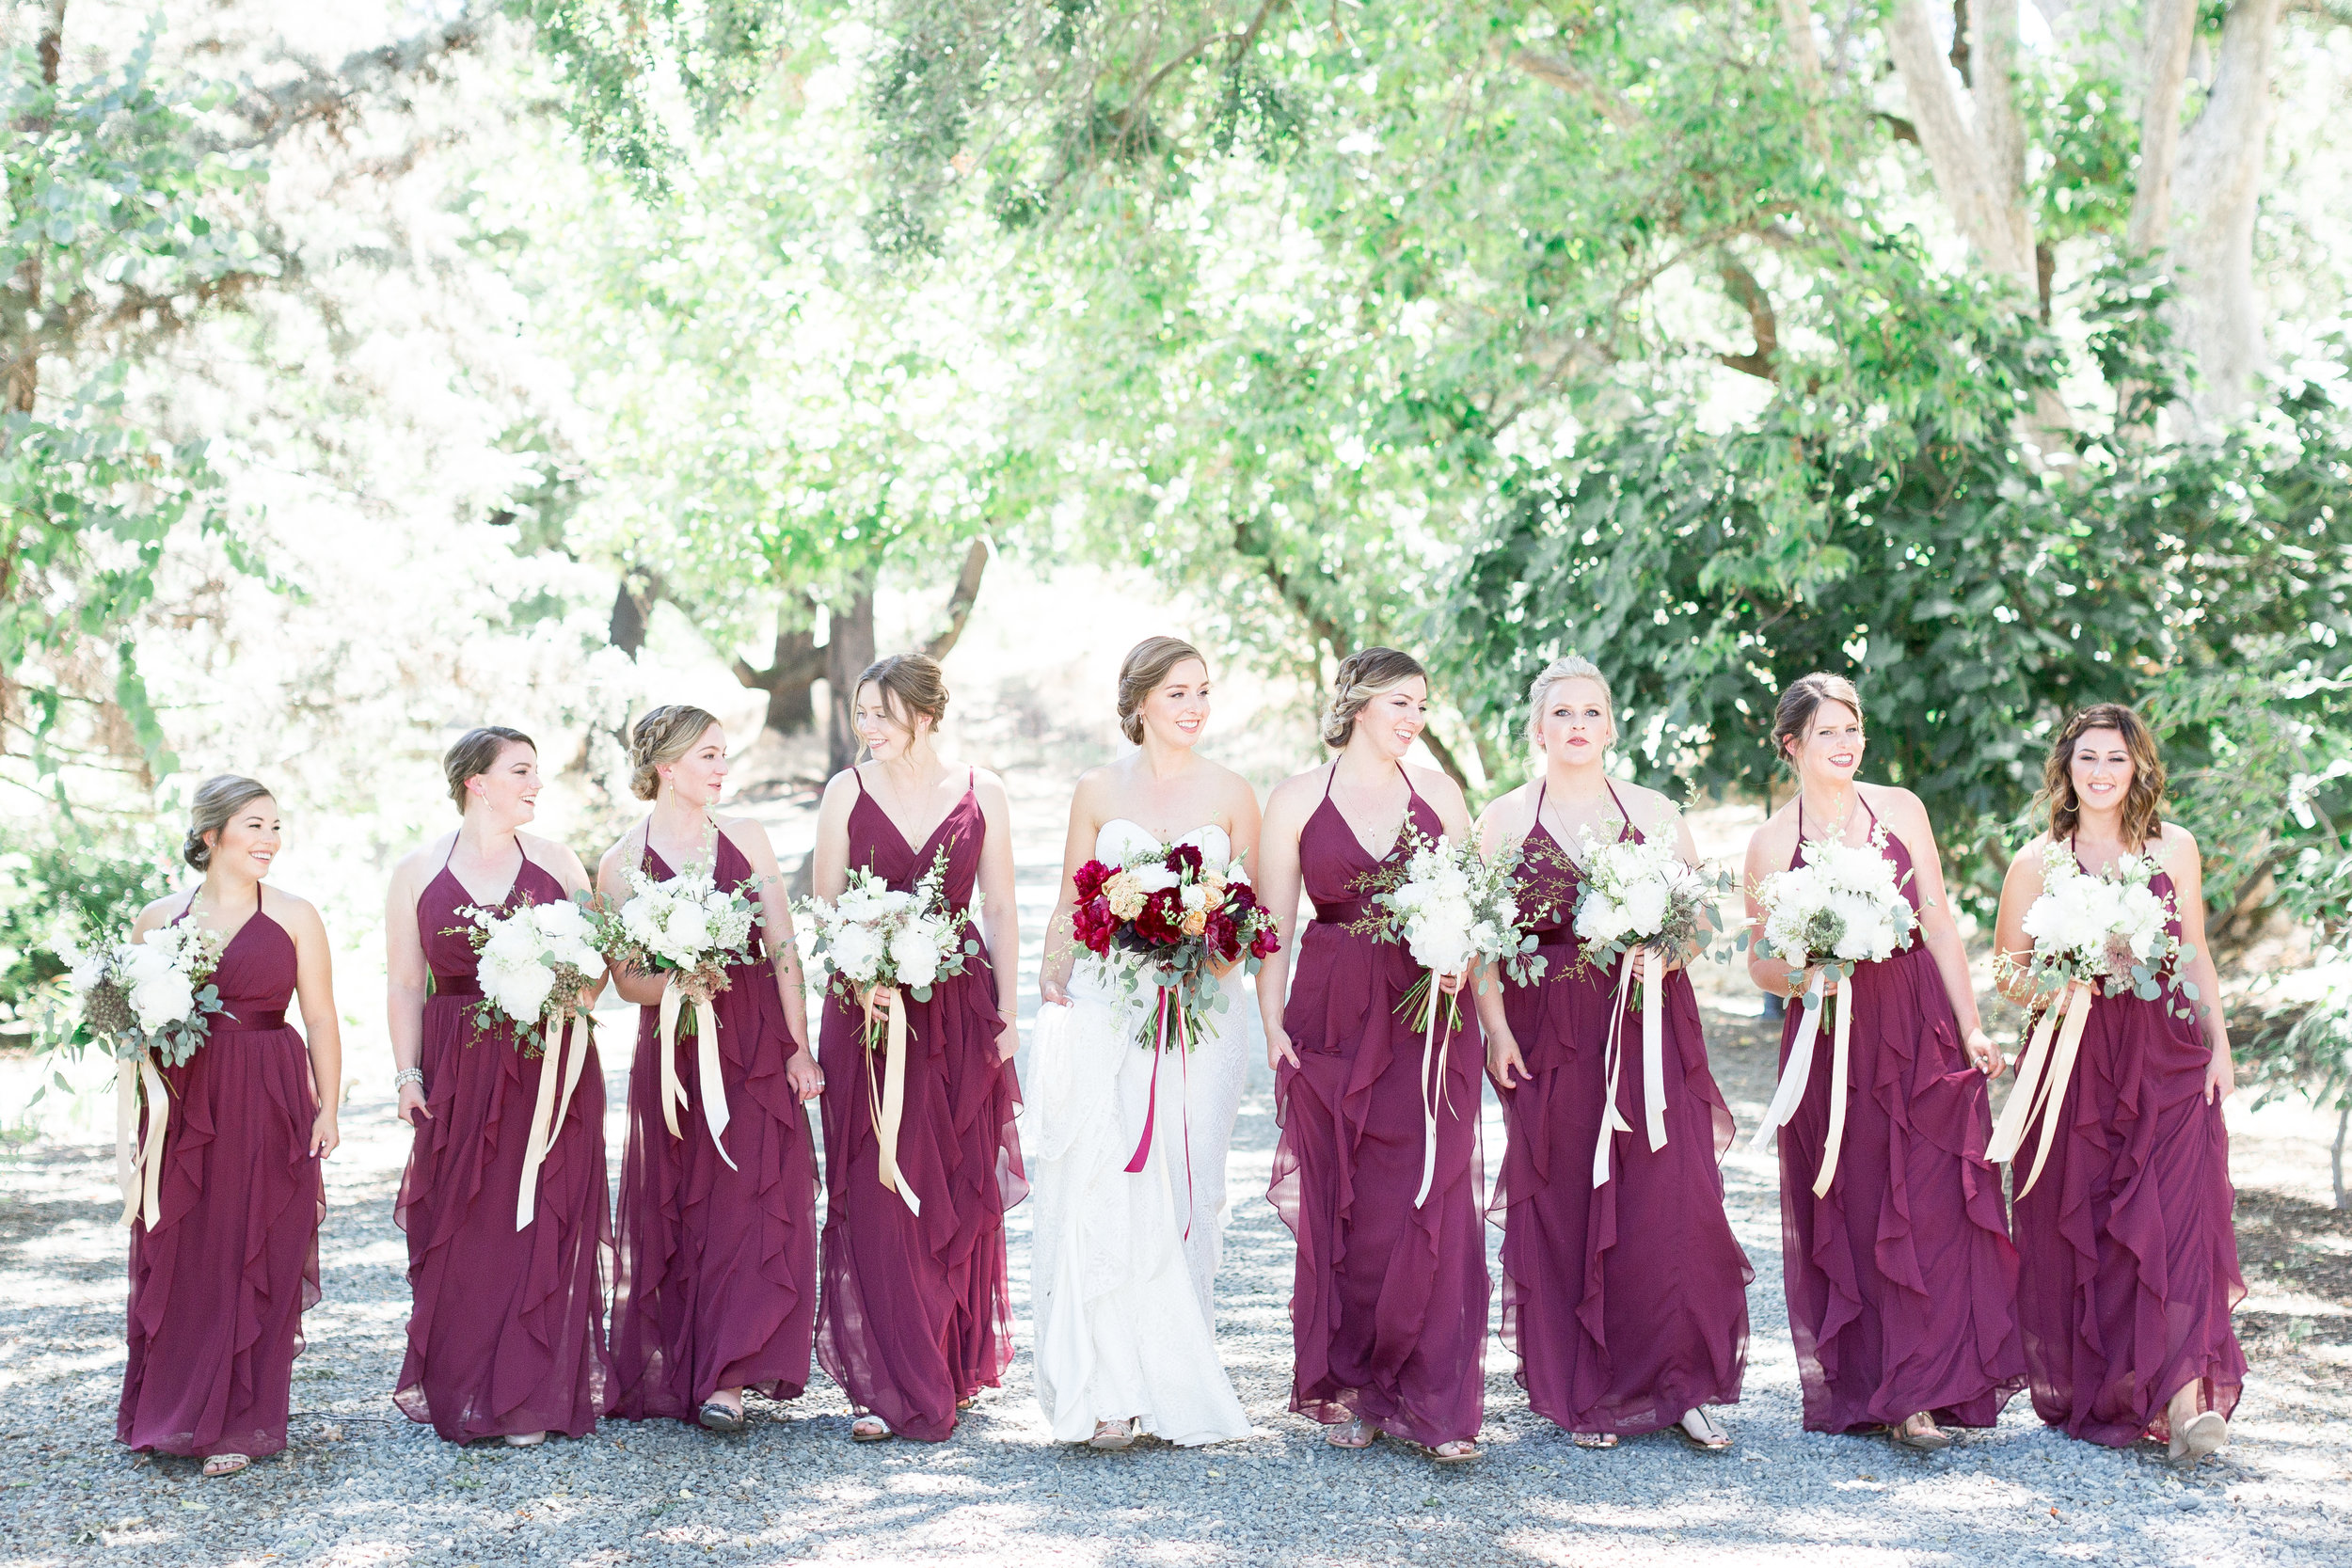 burgondy-bridesmaids-dresses-and-boho-flower-bouquets (72 of 262).jpg